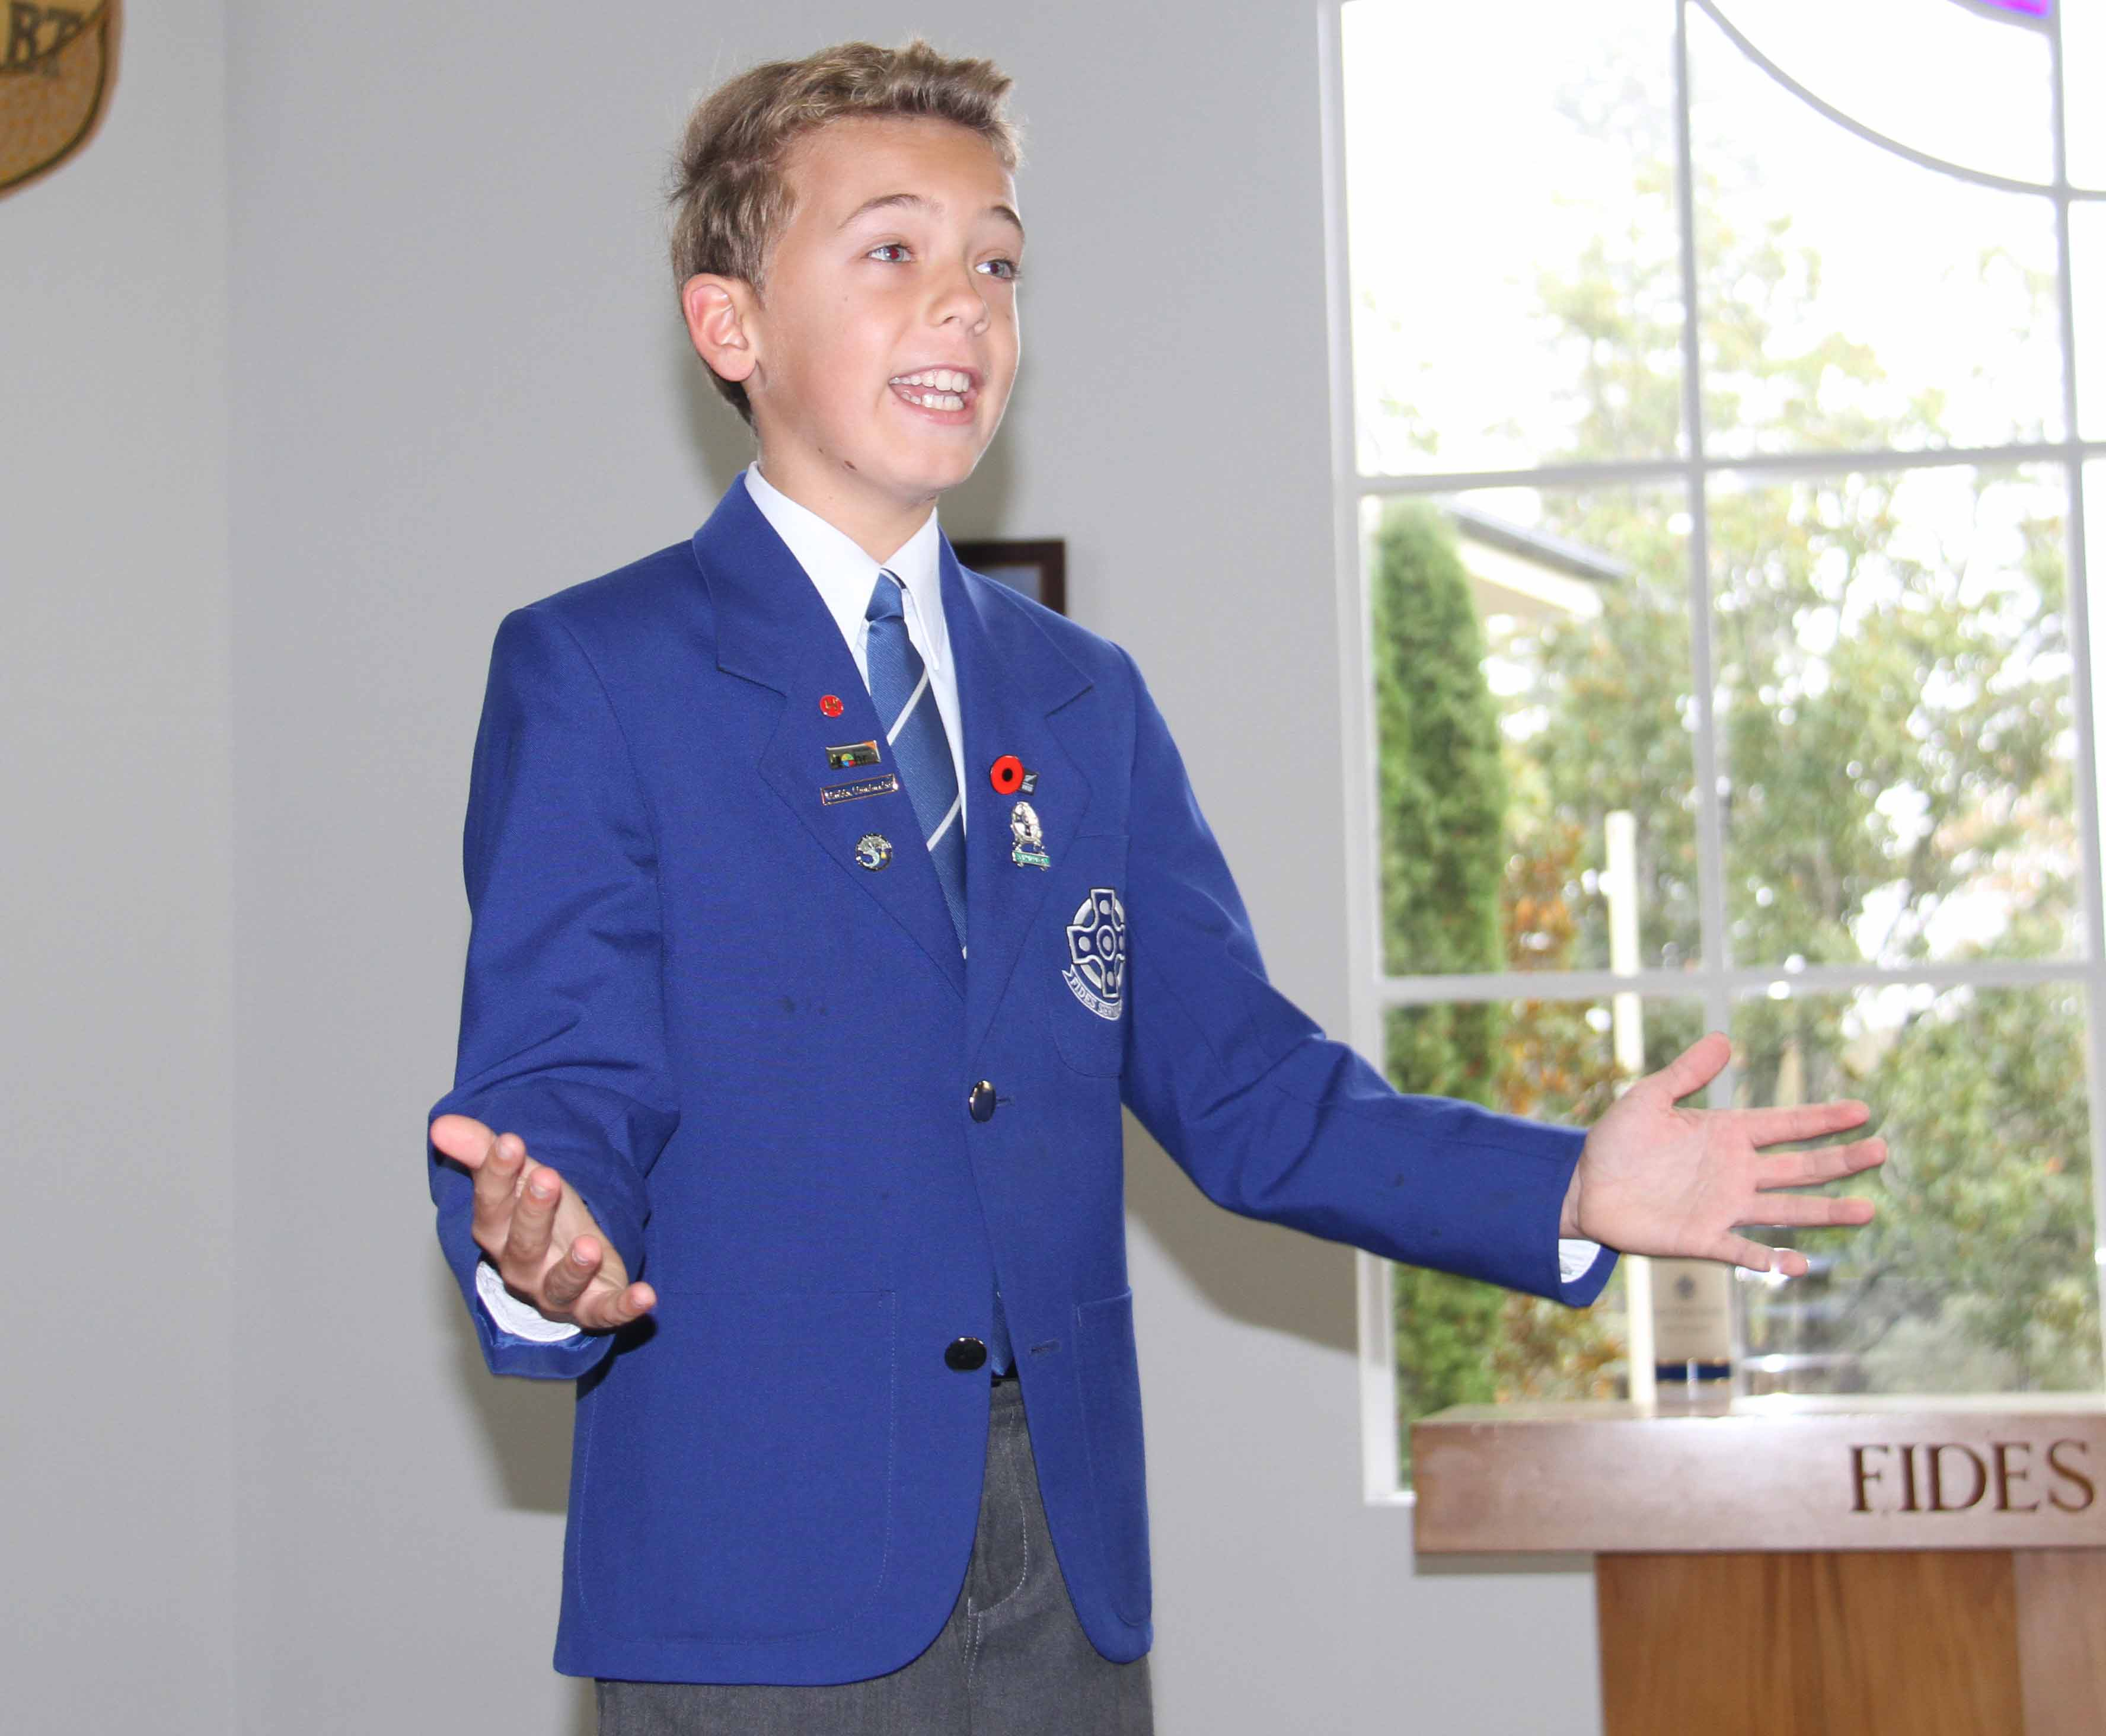 Saint-Kentigern-Boys'-School-Speech.jpg